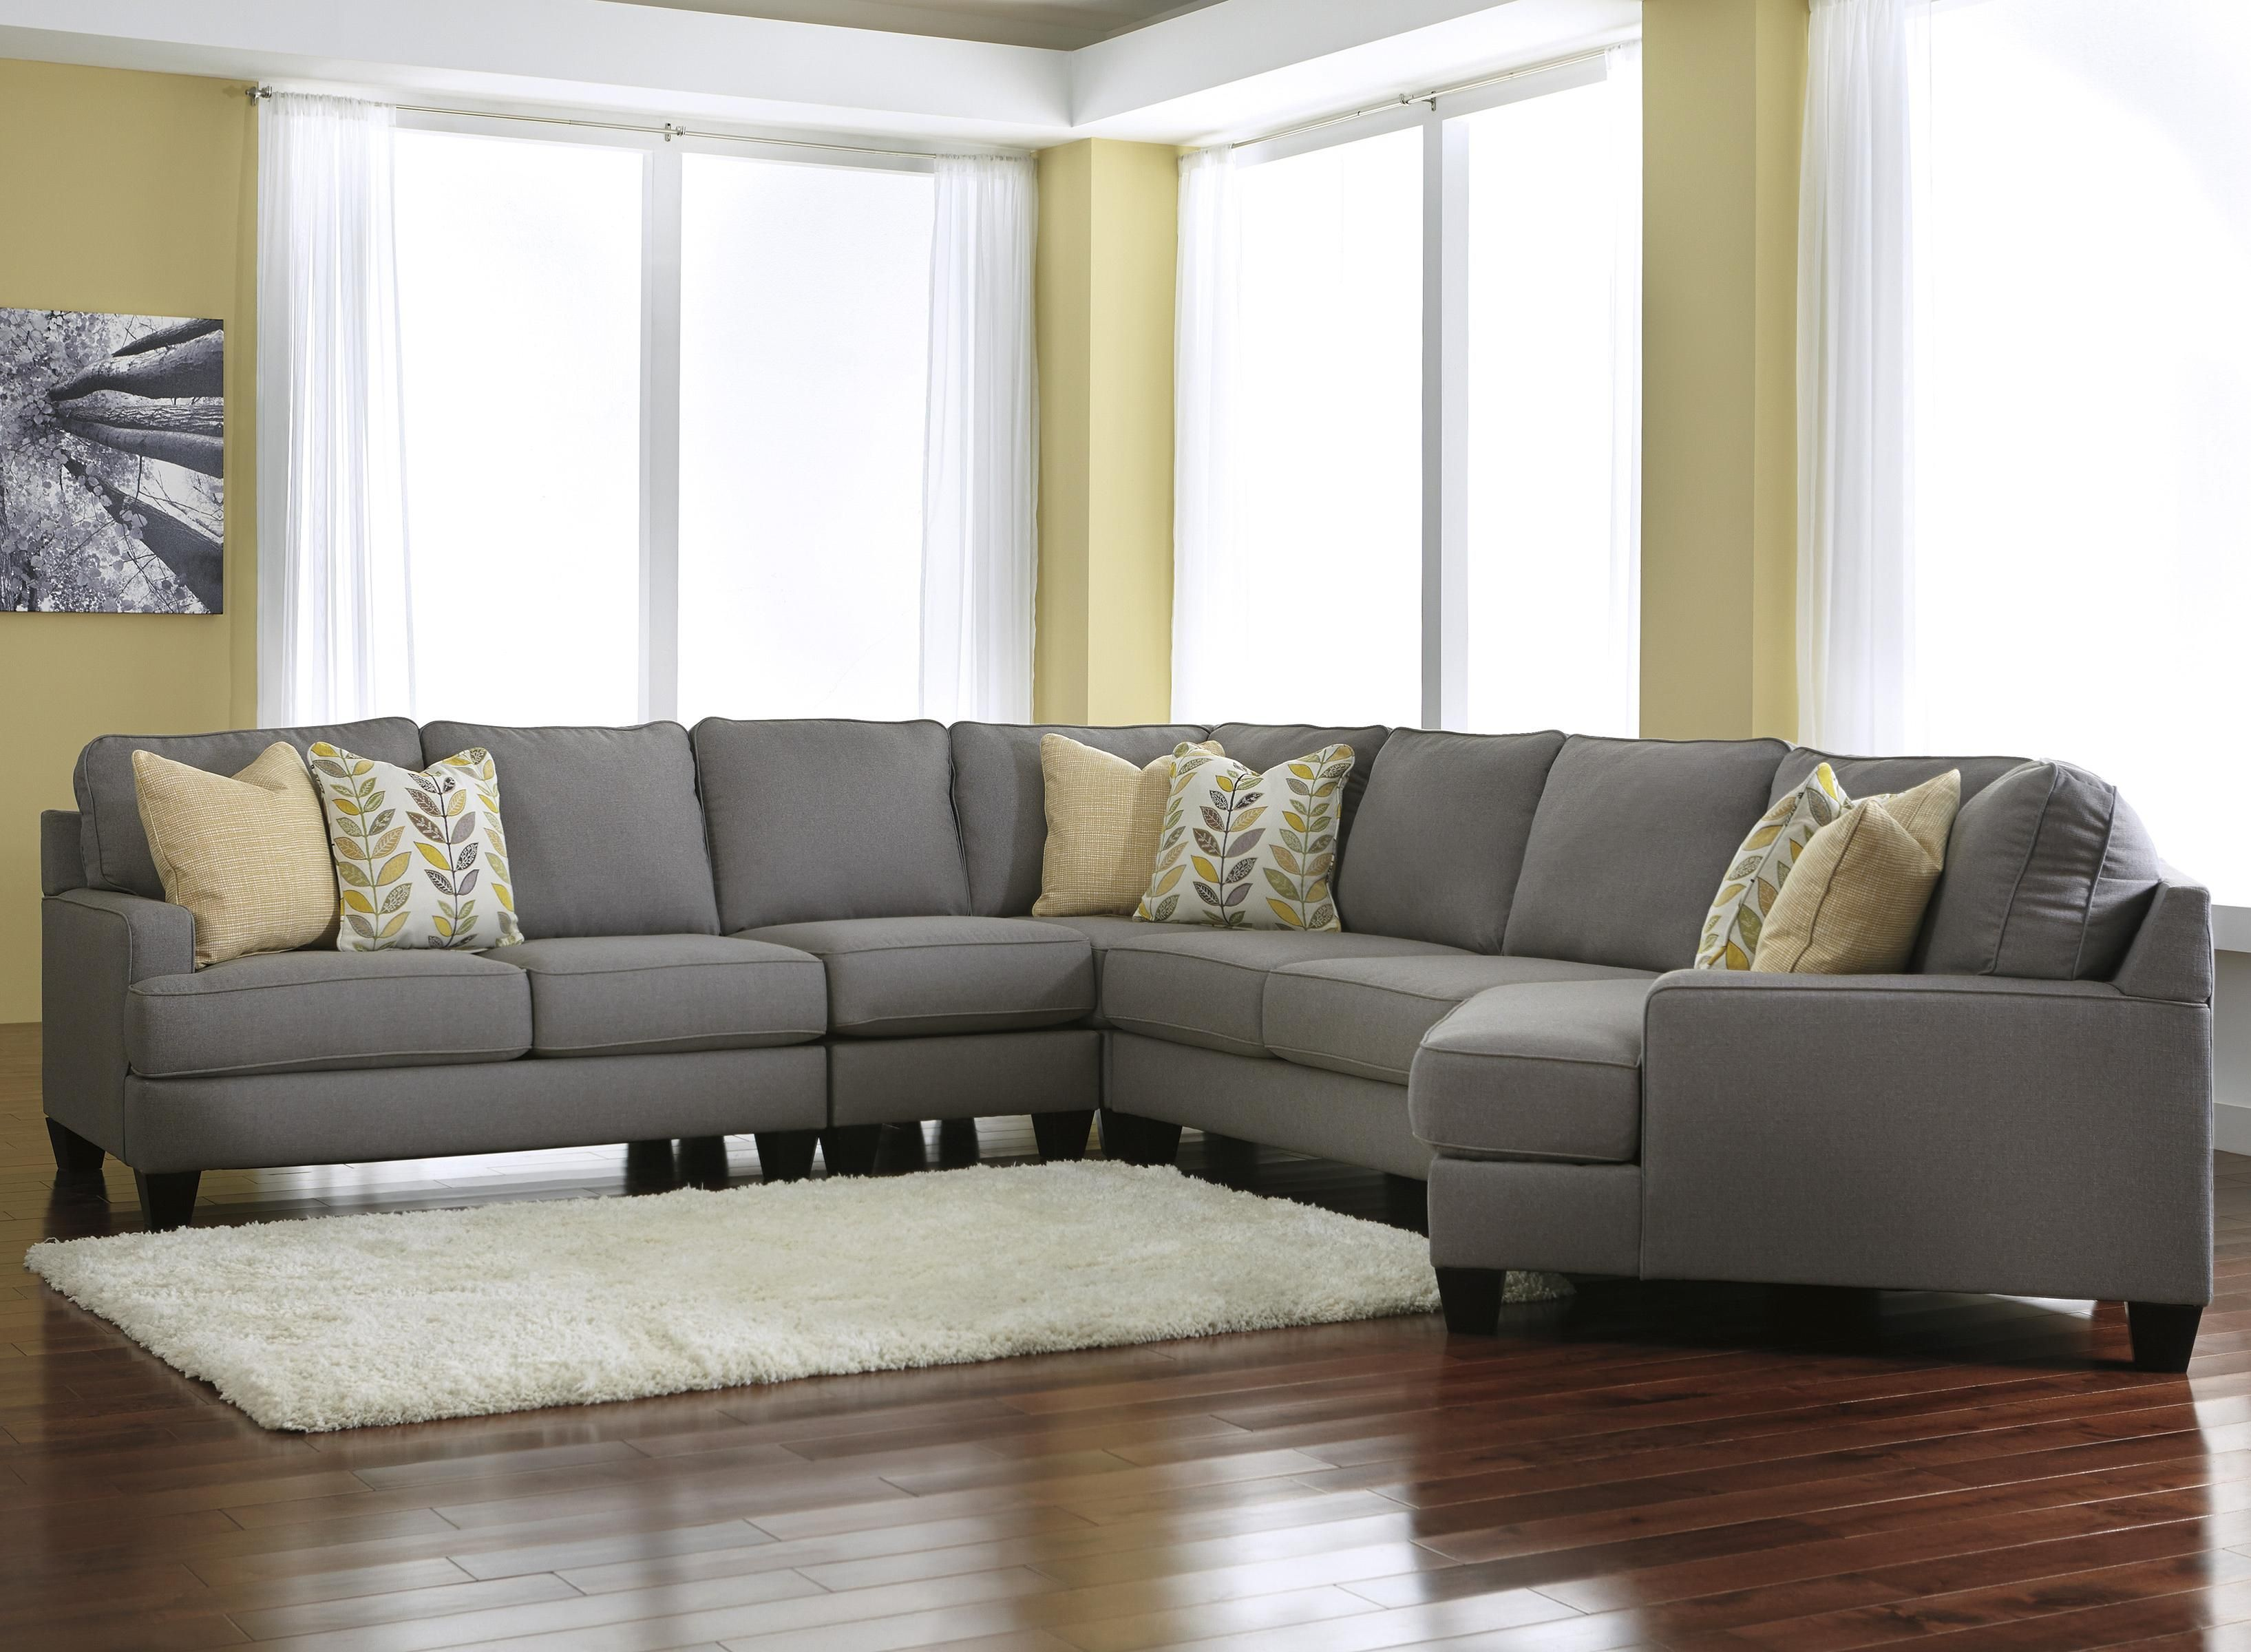 Living Room Designs With Sectionals Mesmerizing Chamberly  Alloy Modern 5Piece Sectional Sofa With Right Cuddler Review